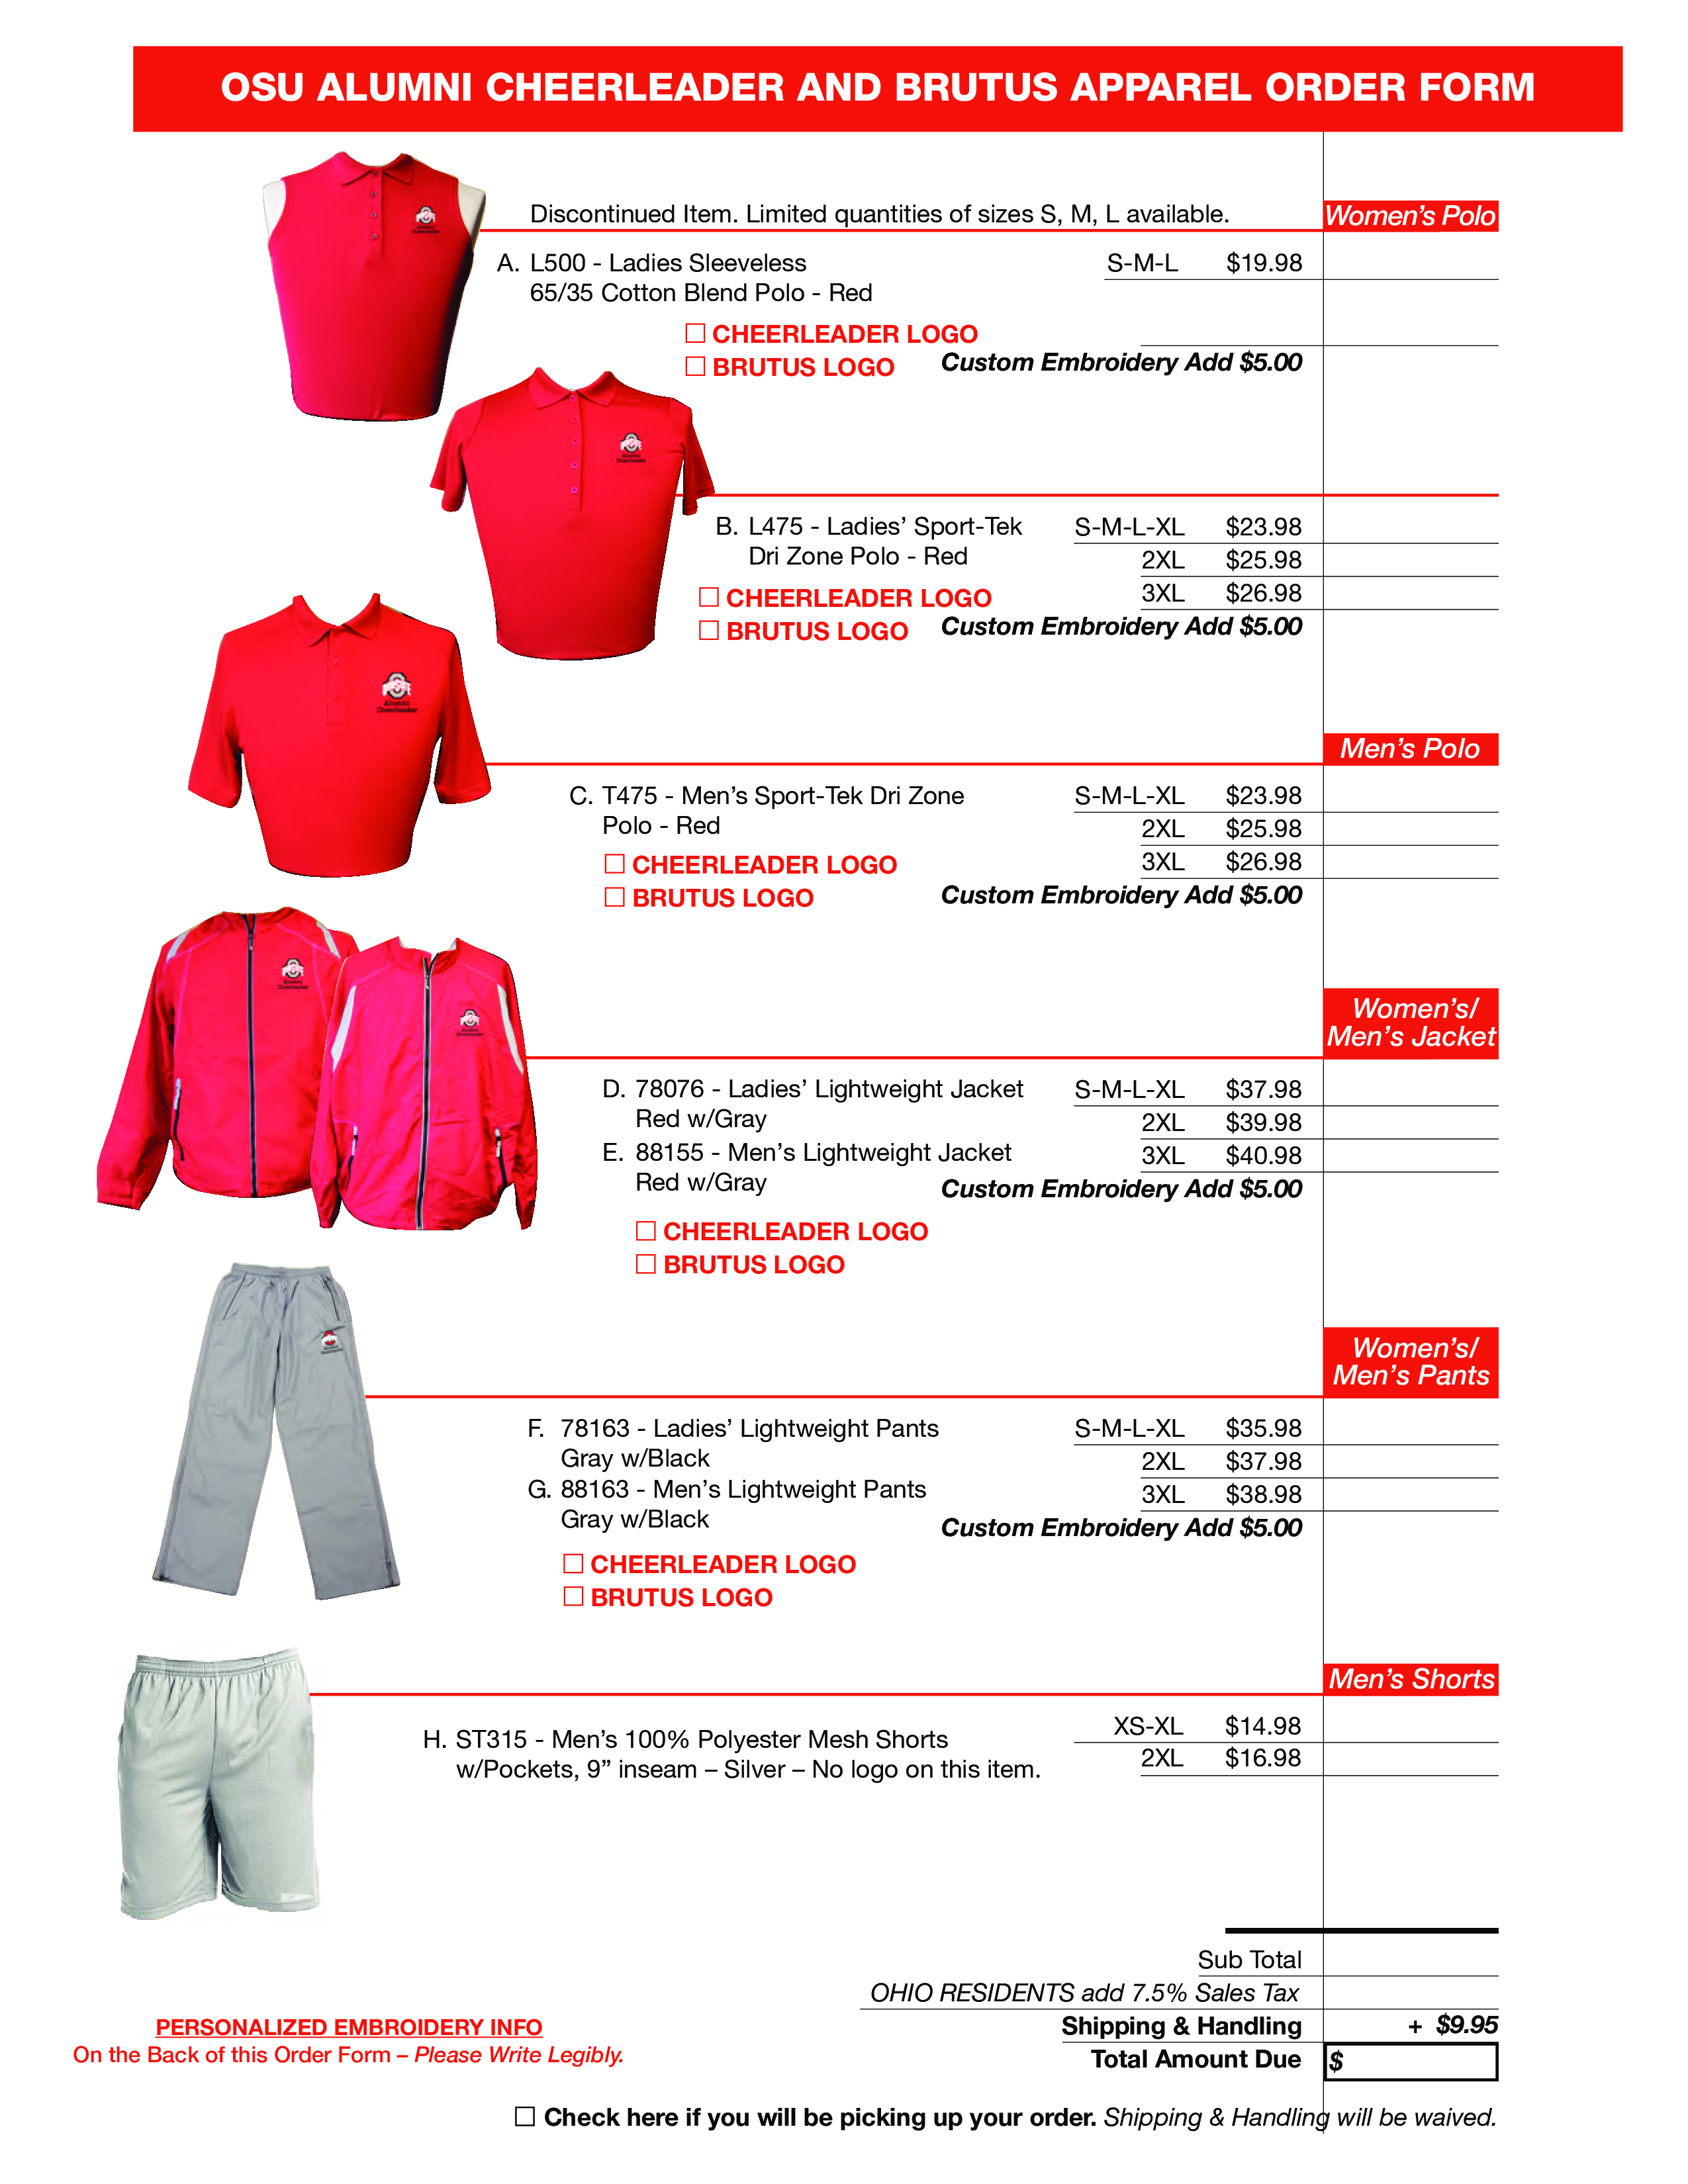 cheerleader apparel order form main image download template